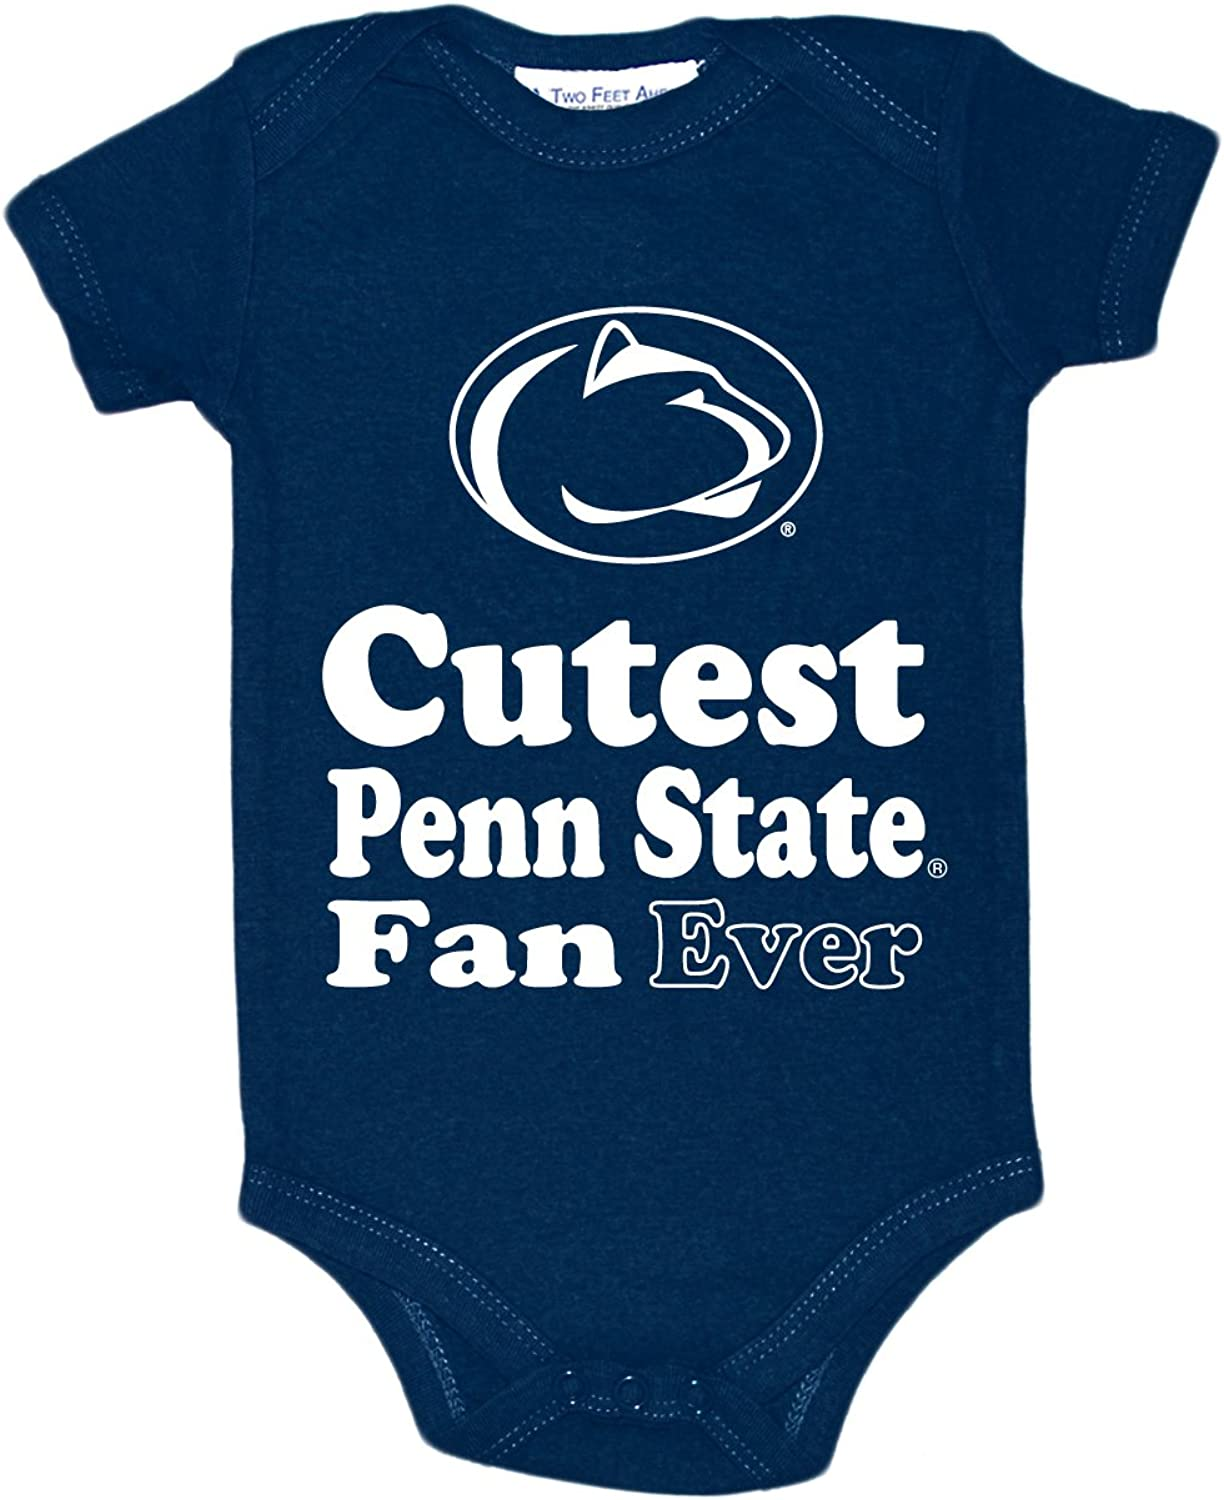 Two Feet Ahead NCAA Penn State Nittany Lions Children Unisex Lap Shoulder Creeper,12 mo,Navy